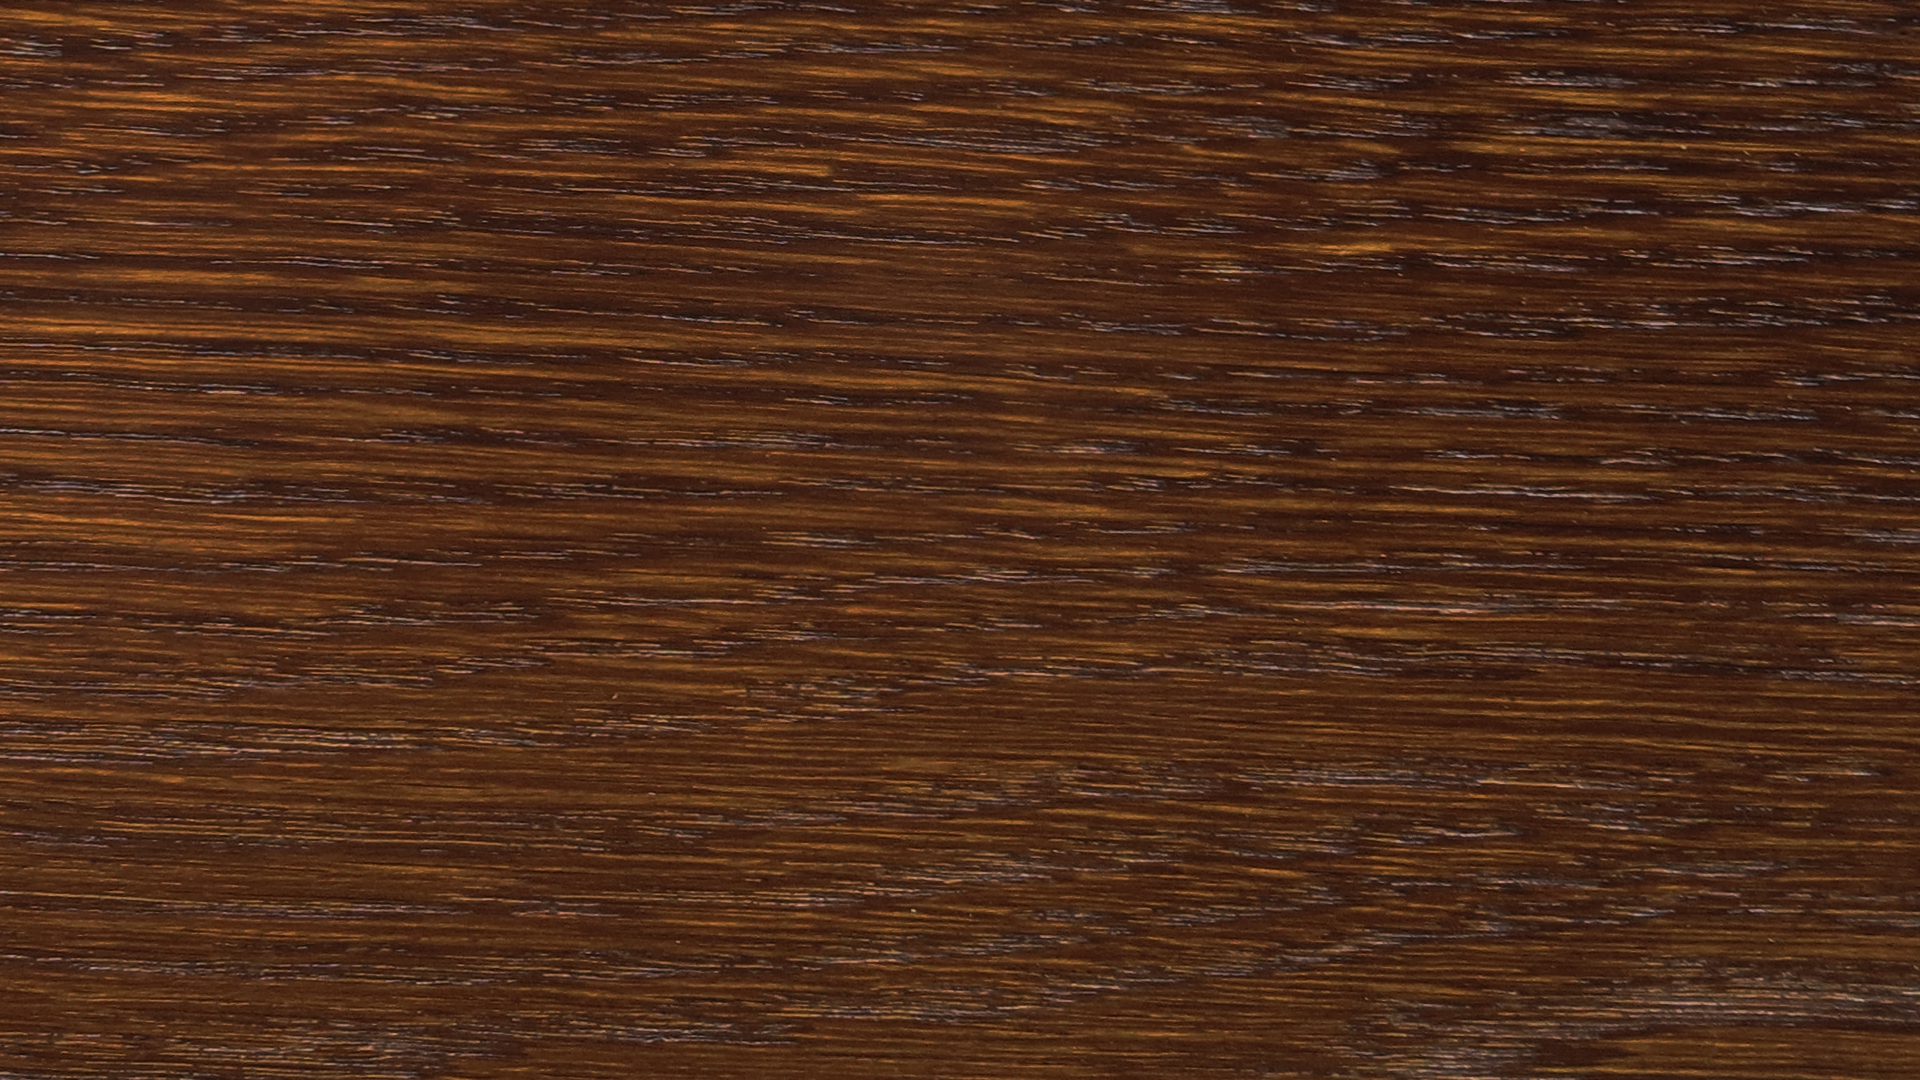 colorwood 18_57b735608ebd9